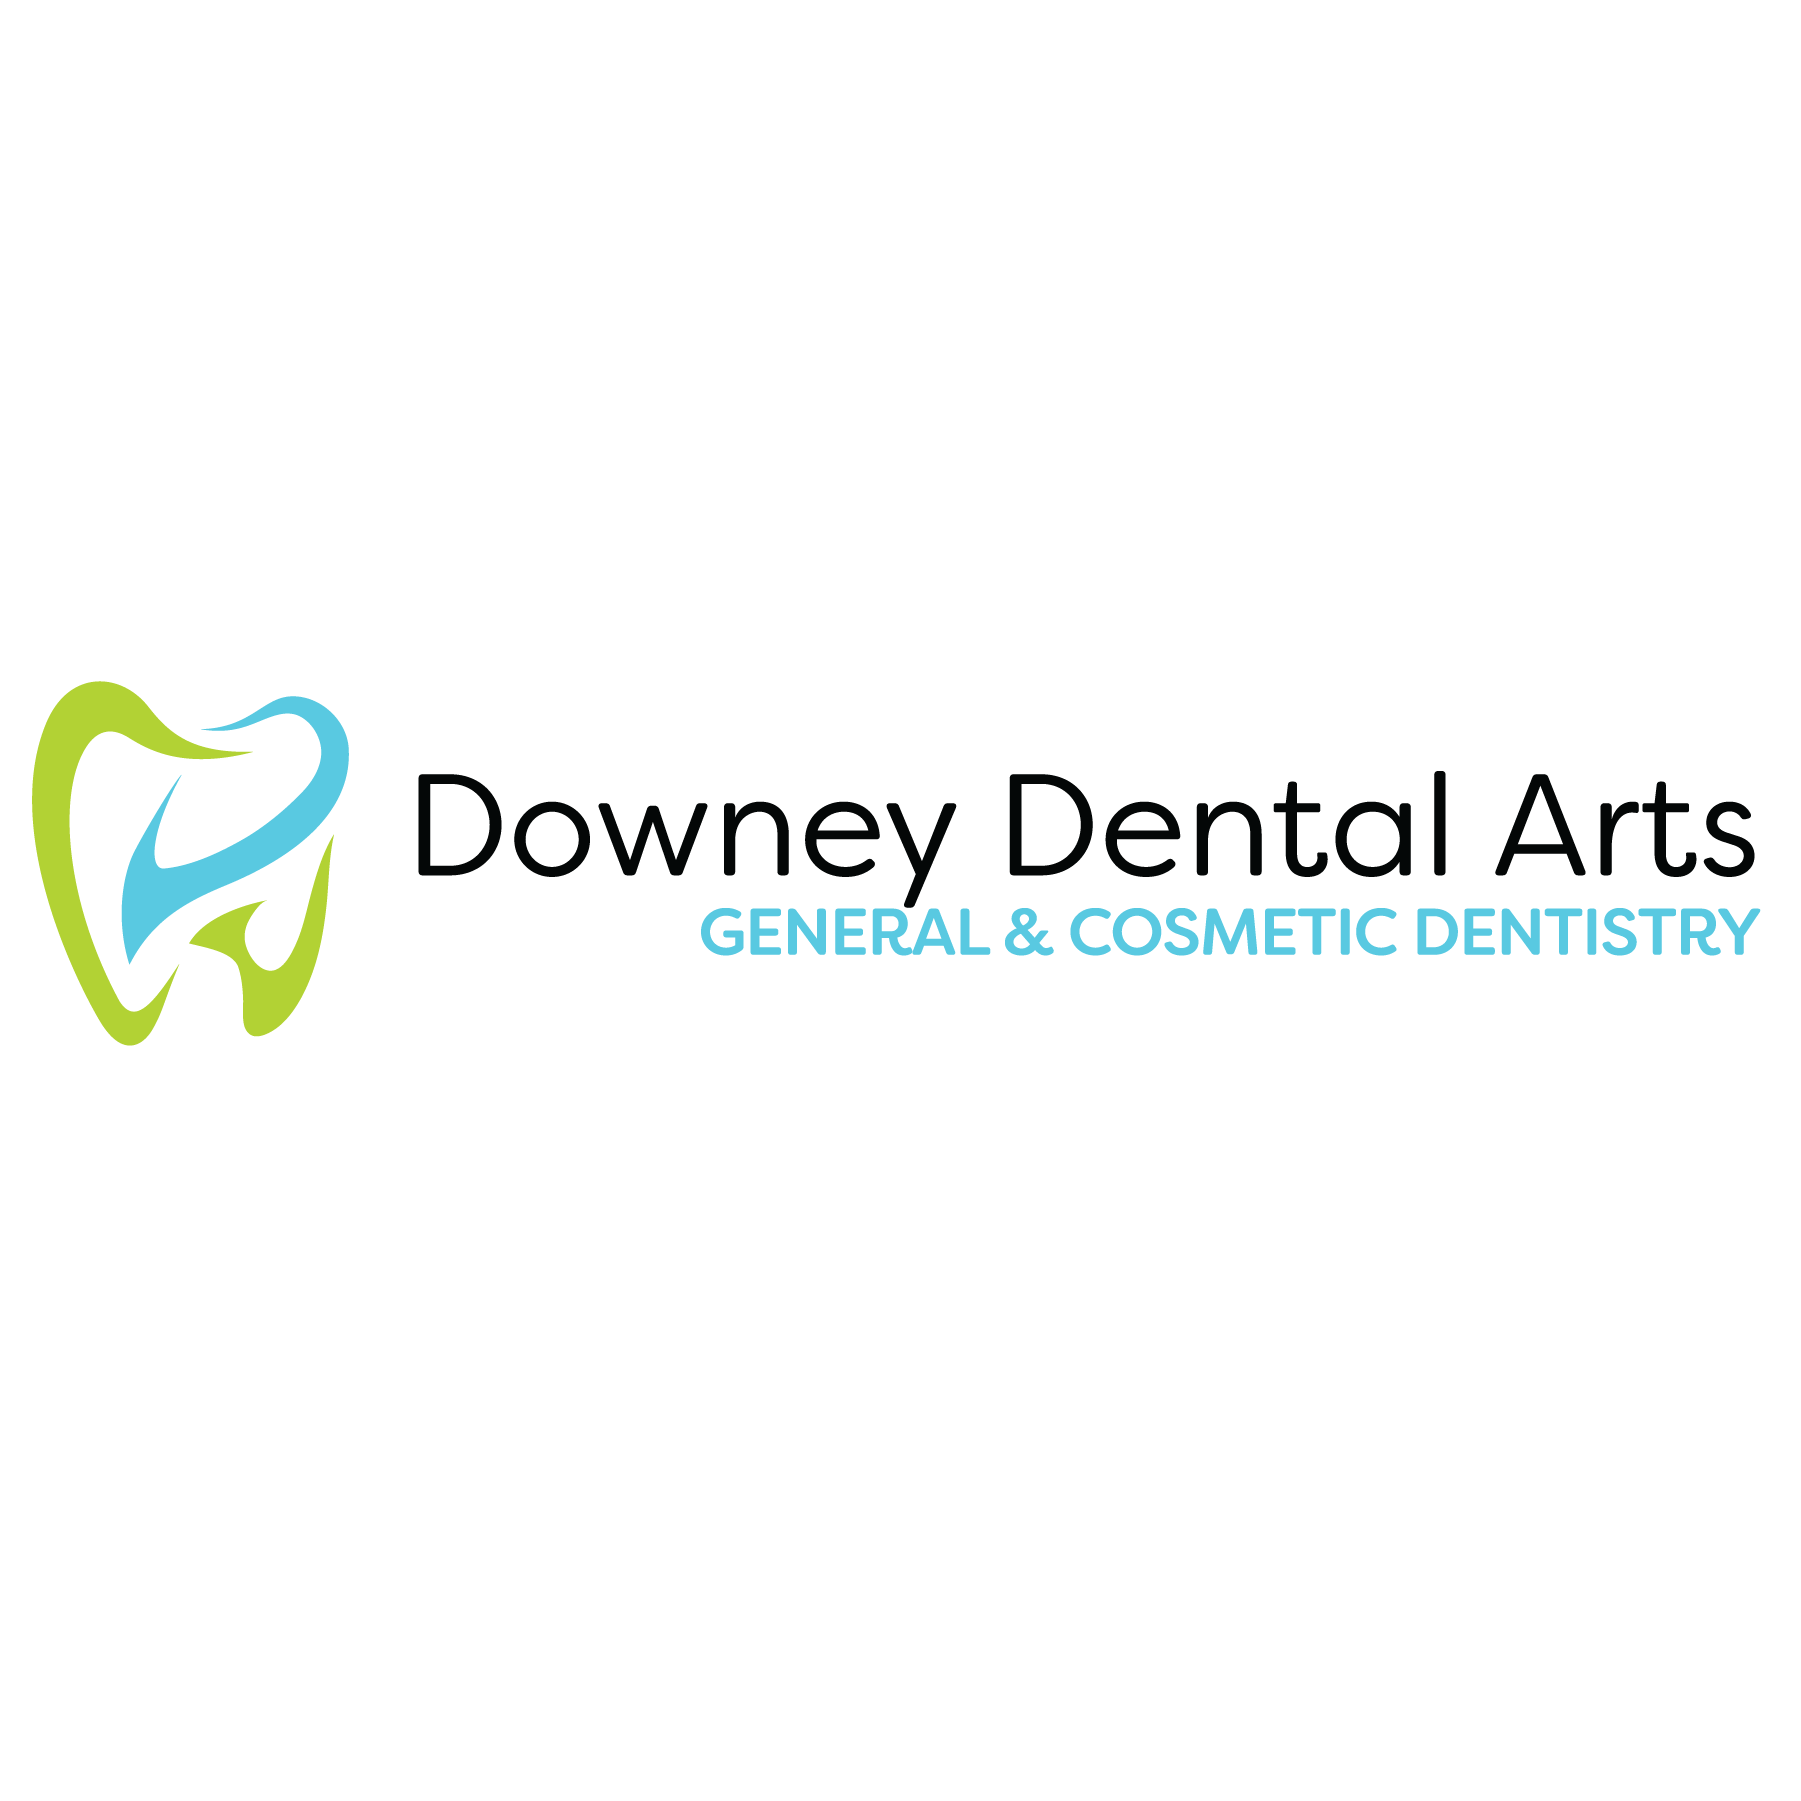 Downey Dental Arts